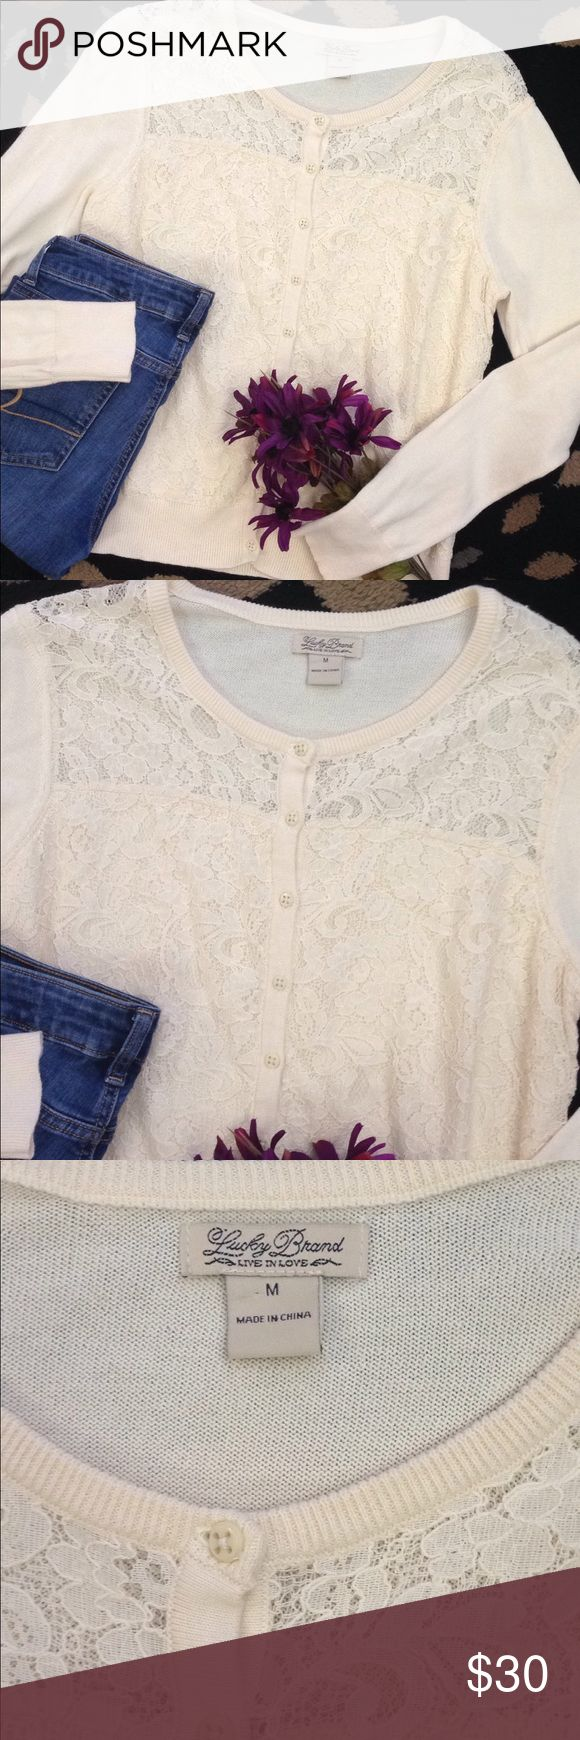 Lucky Brand lace button up cardigan This cardigan is gorgeous and in excellent gently used condition. Buttons up and the entire front is lace. Shoulder part is the only area you can minimally see through the lace. Size medium Lucky Brand Sweaters Cardigans